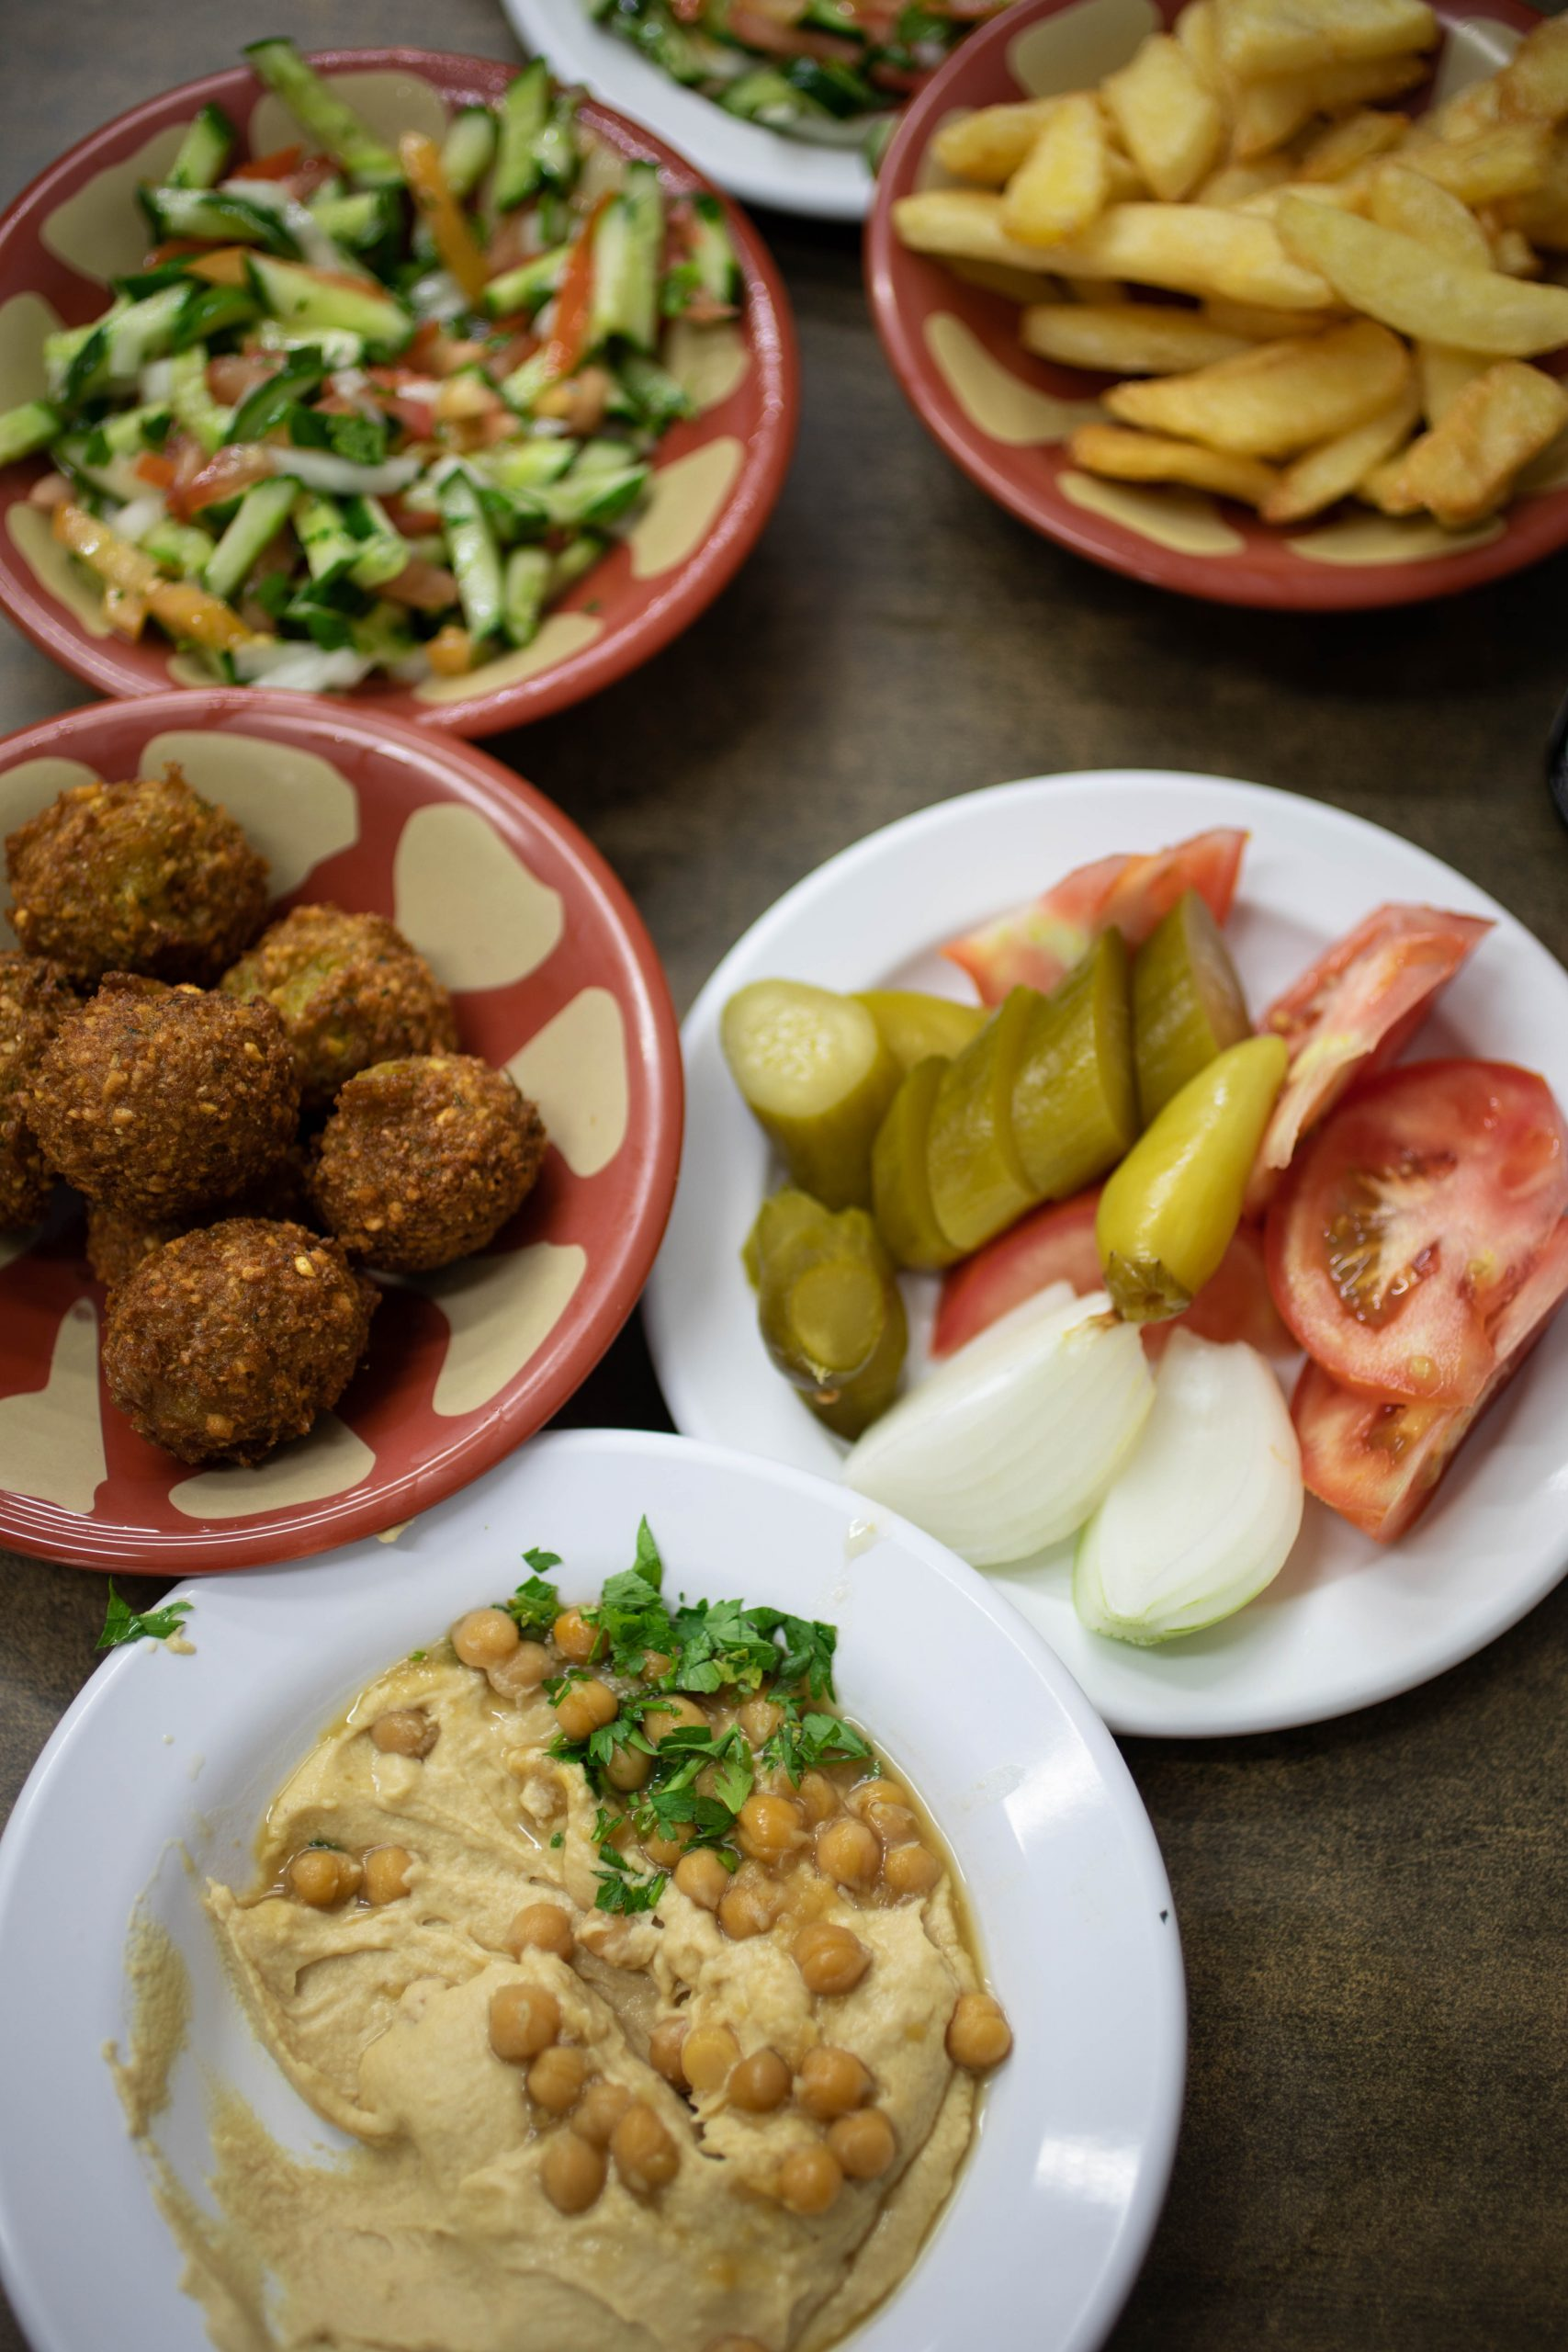 A falafel dish, and hummus dish with cheek peas, vegetables, pickles and vegetables as side dishes.